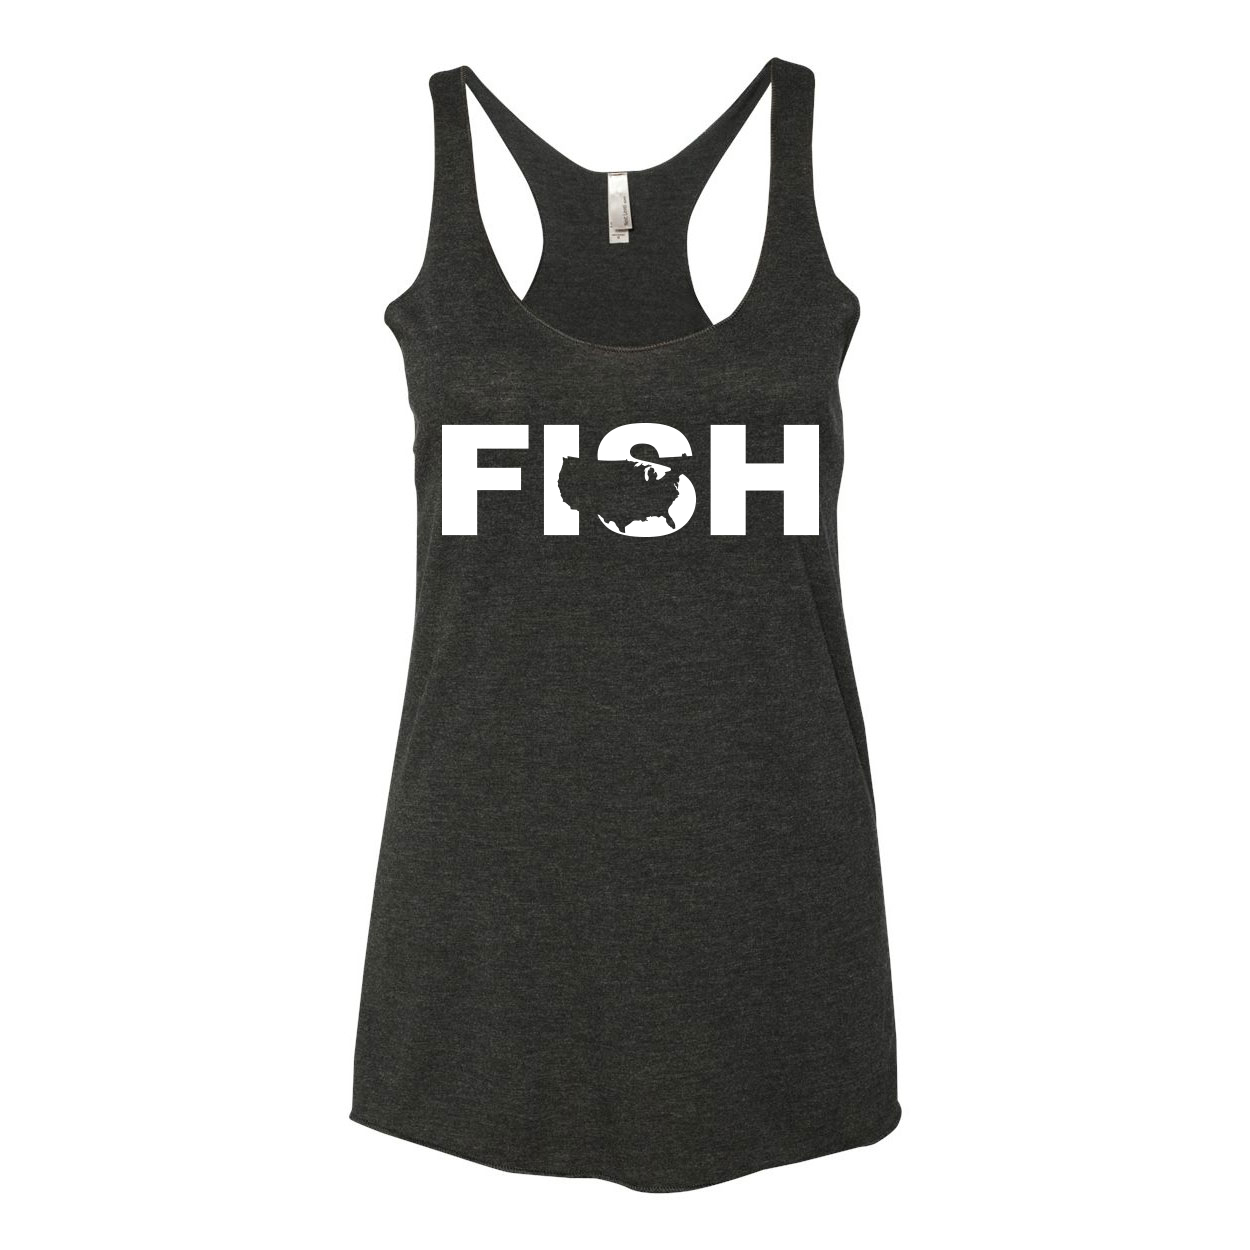 Fish United States Classic Women's Ultra Thin Tank Top Black (White Logo)